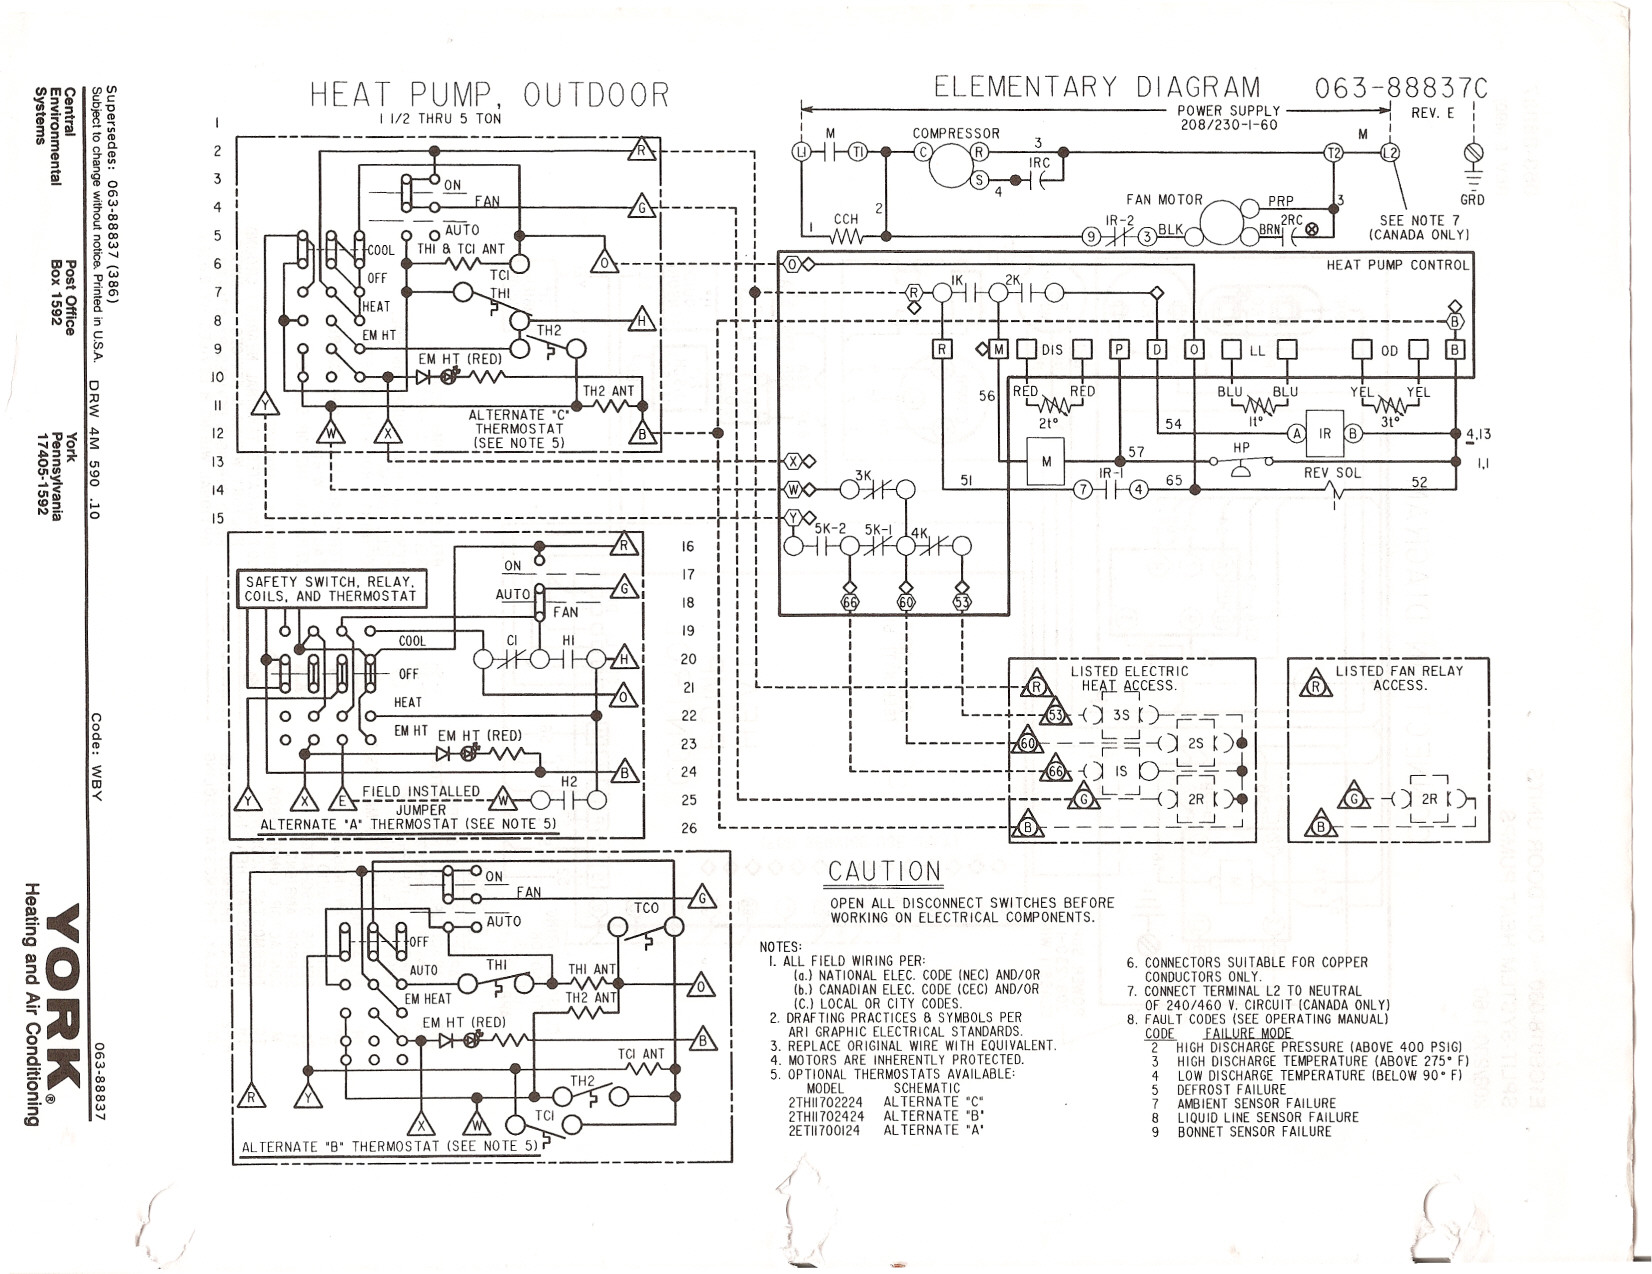 Honeywell Chronotherm Iii Wiring Diagram - Best Wiring Diagram 2017